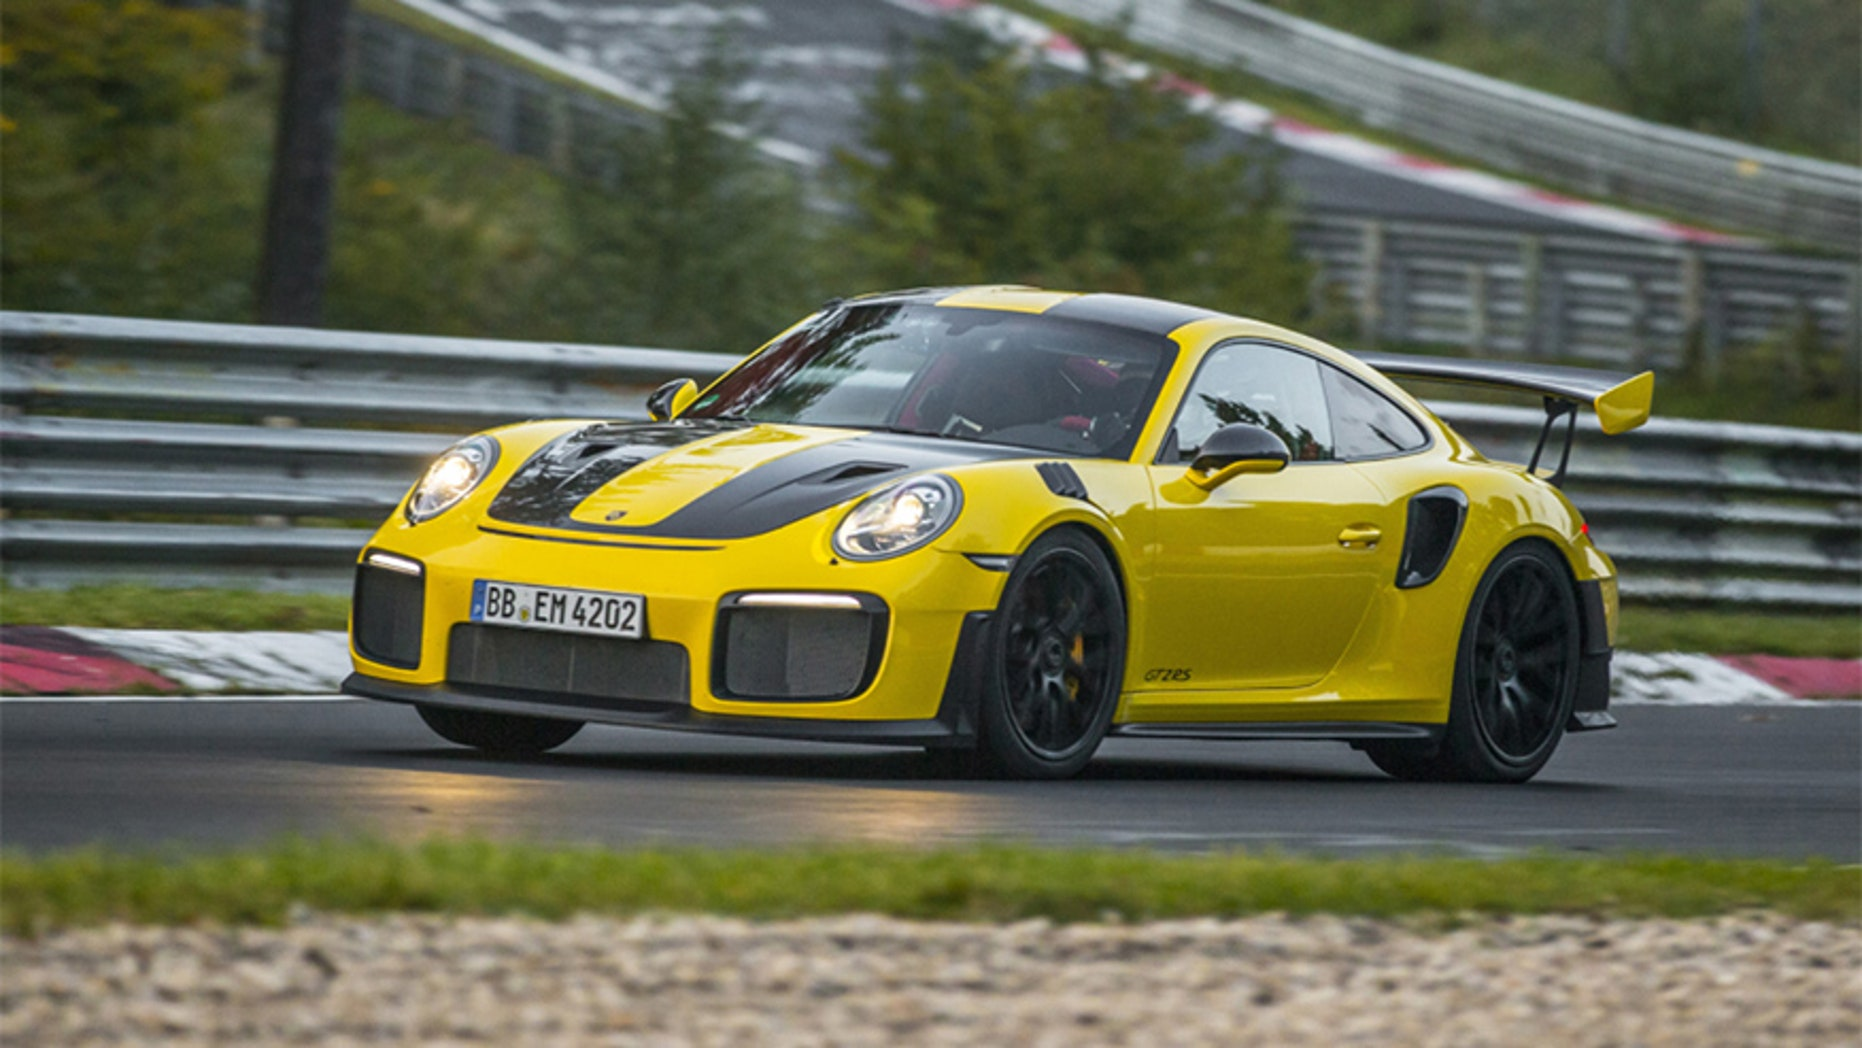 2018 Porsche 911 Gt2 Rs Sets Record 6 47 3 Nurburgring Lap Time